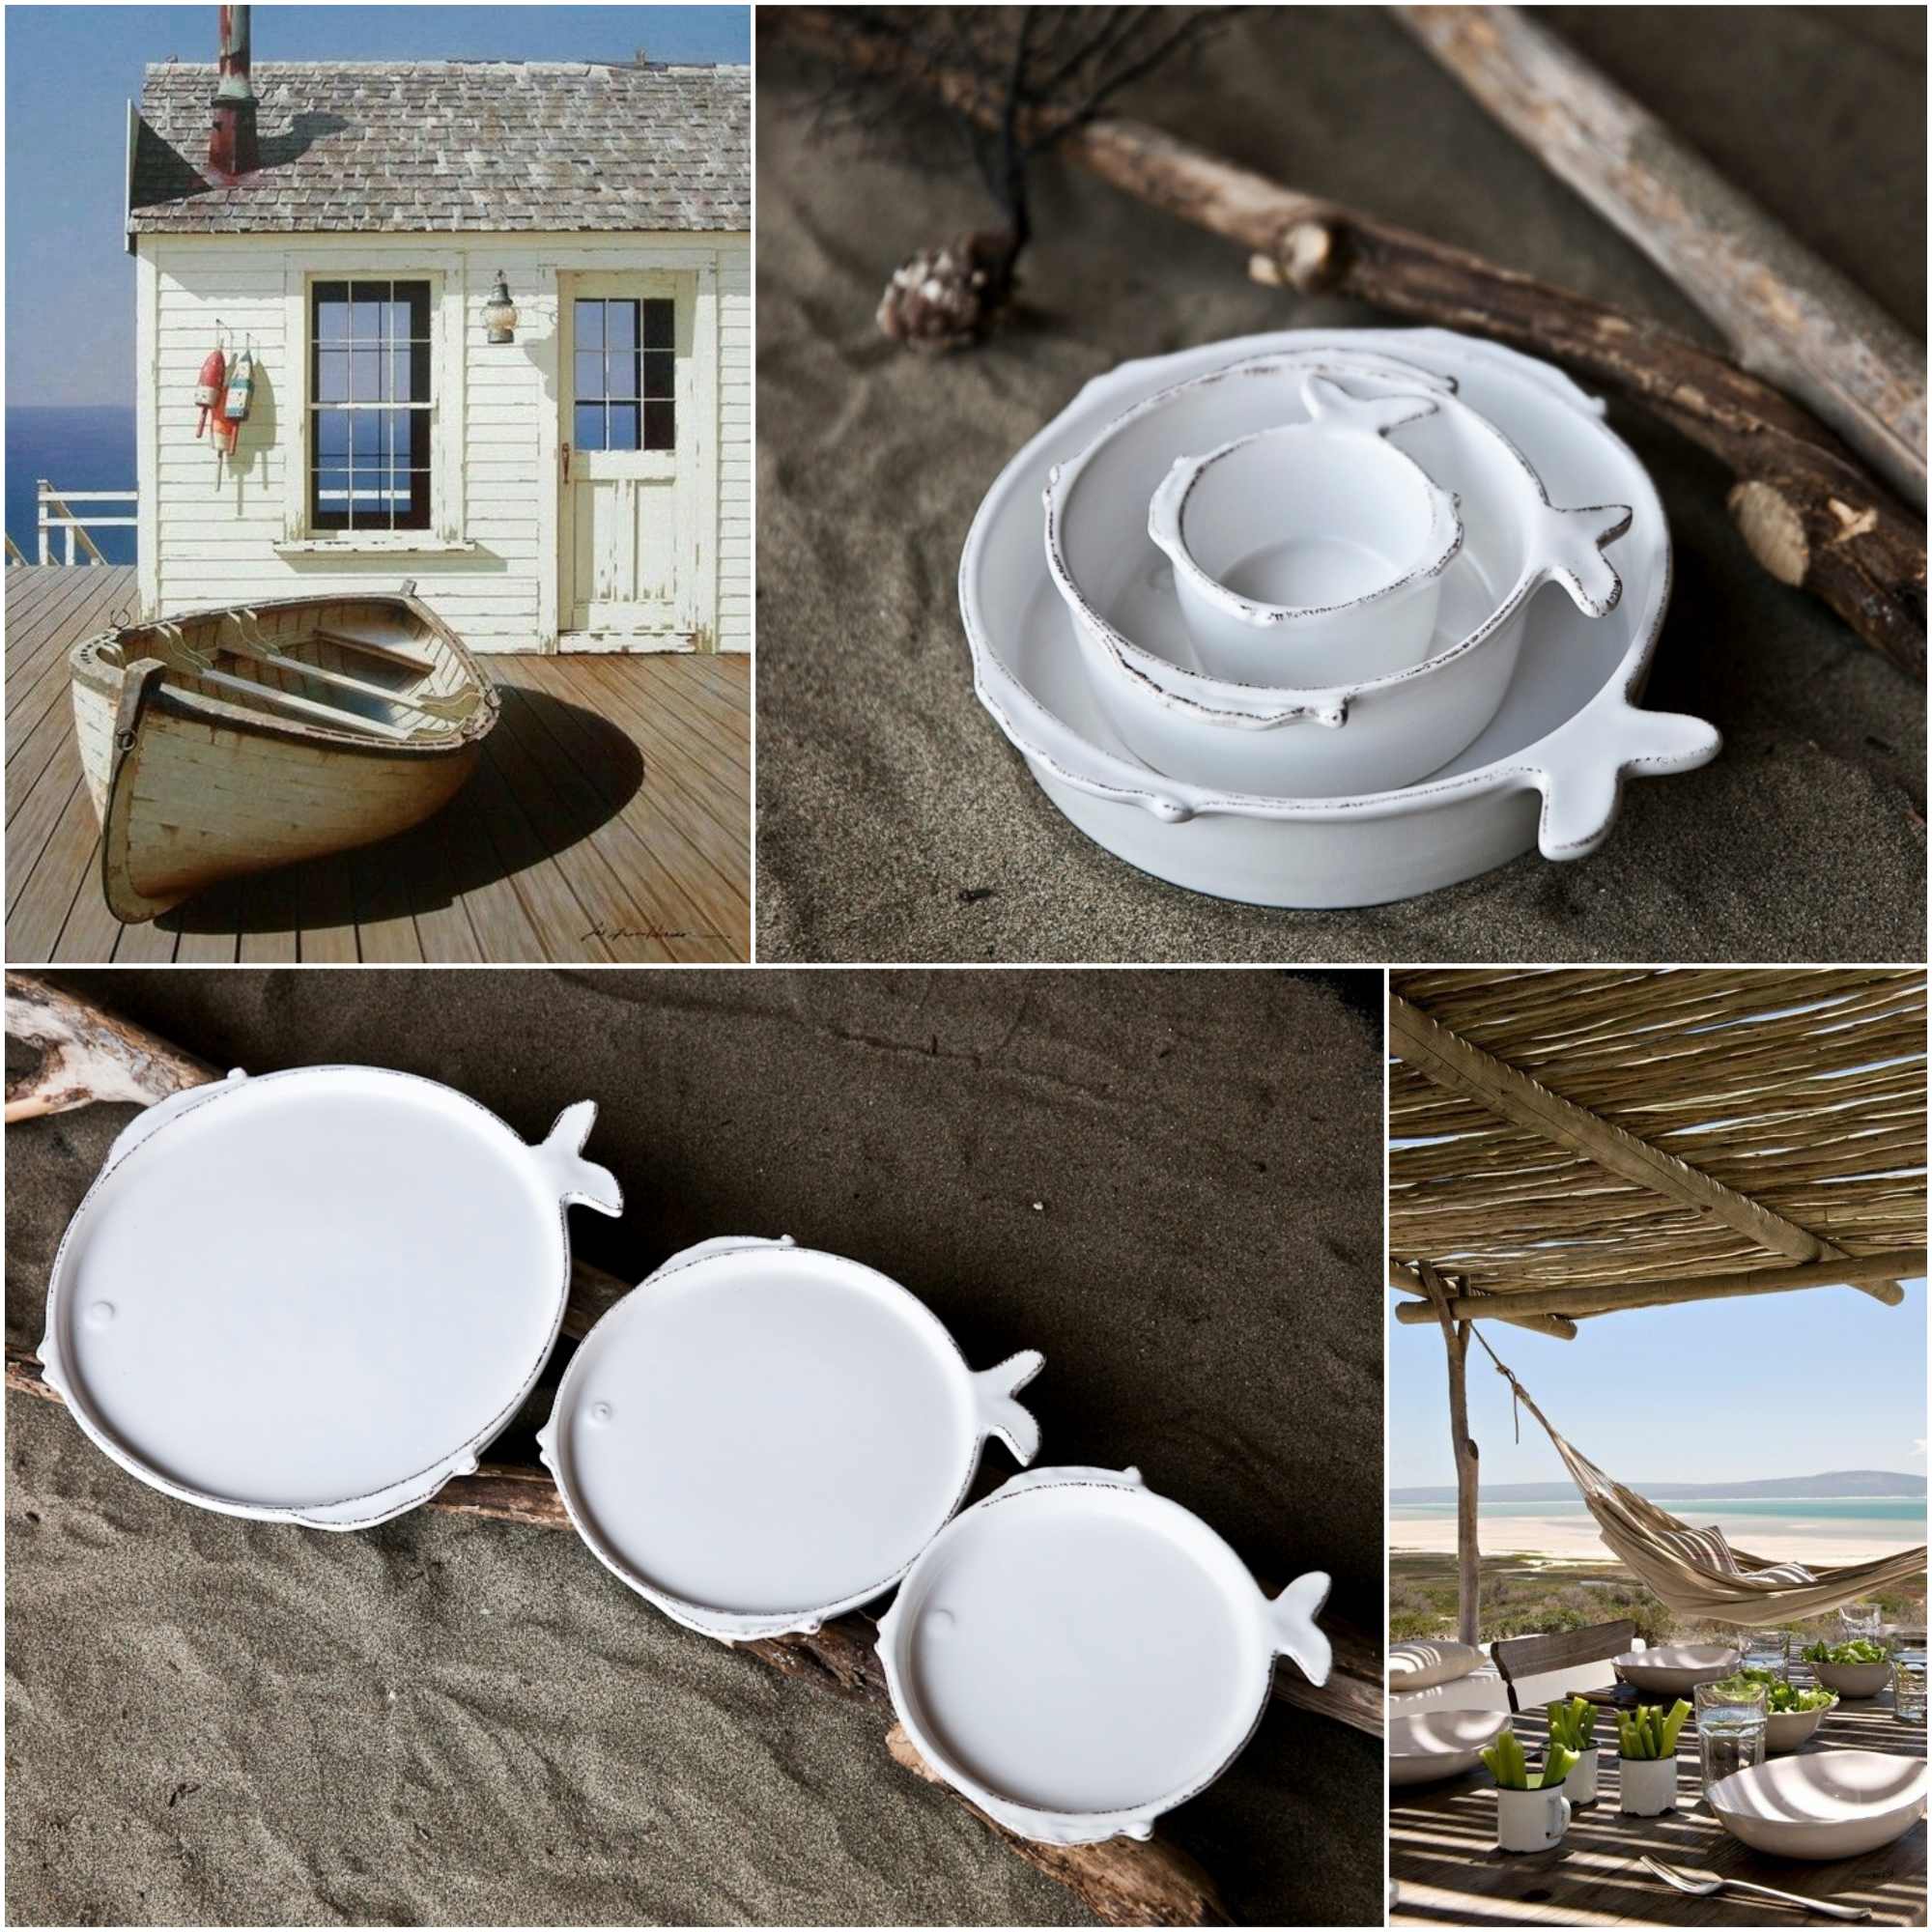 Beachy accents dish set